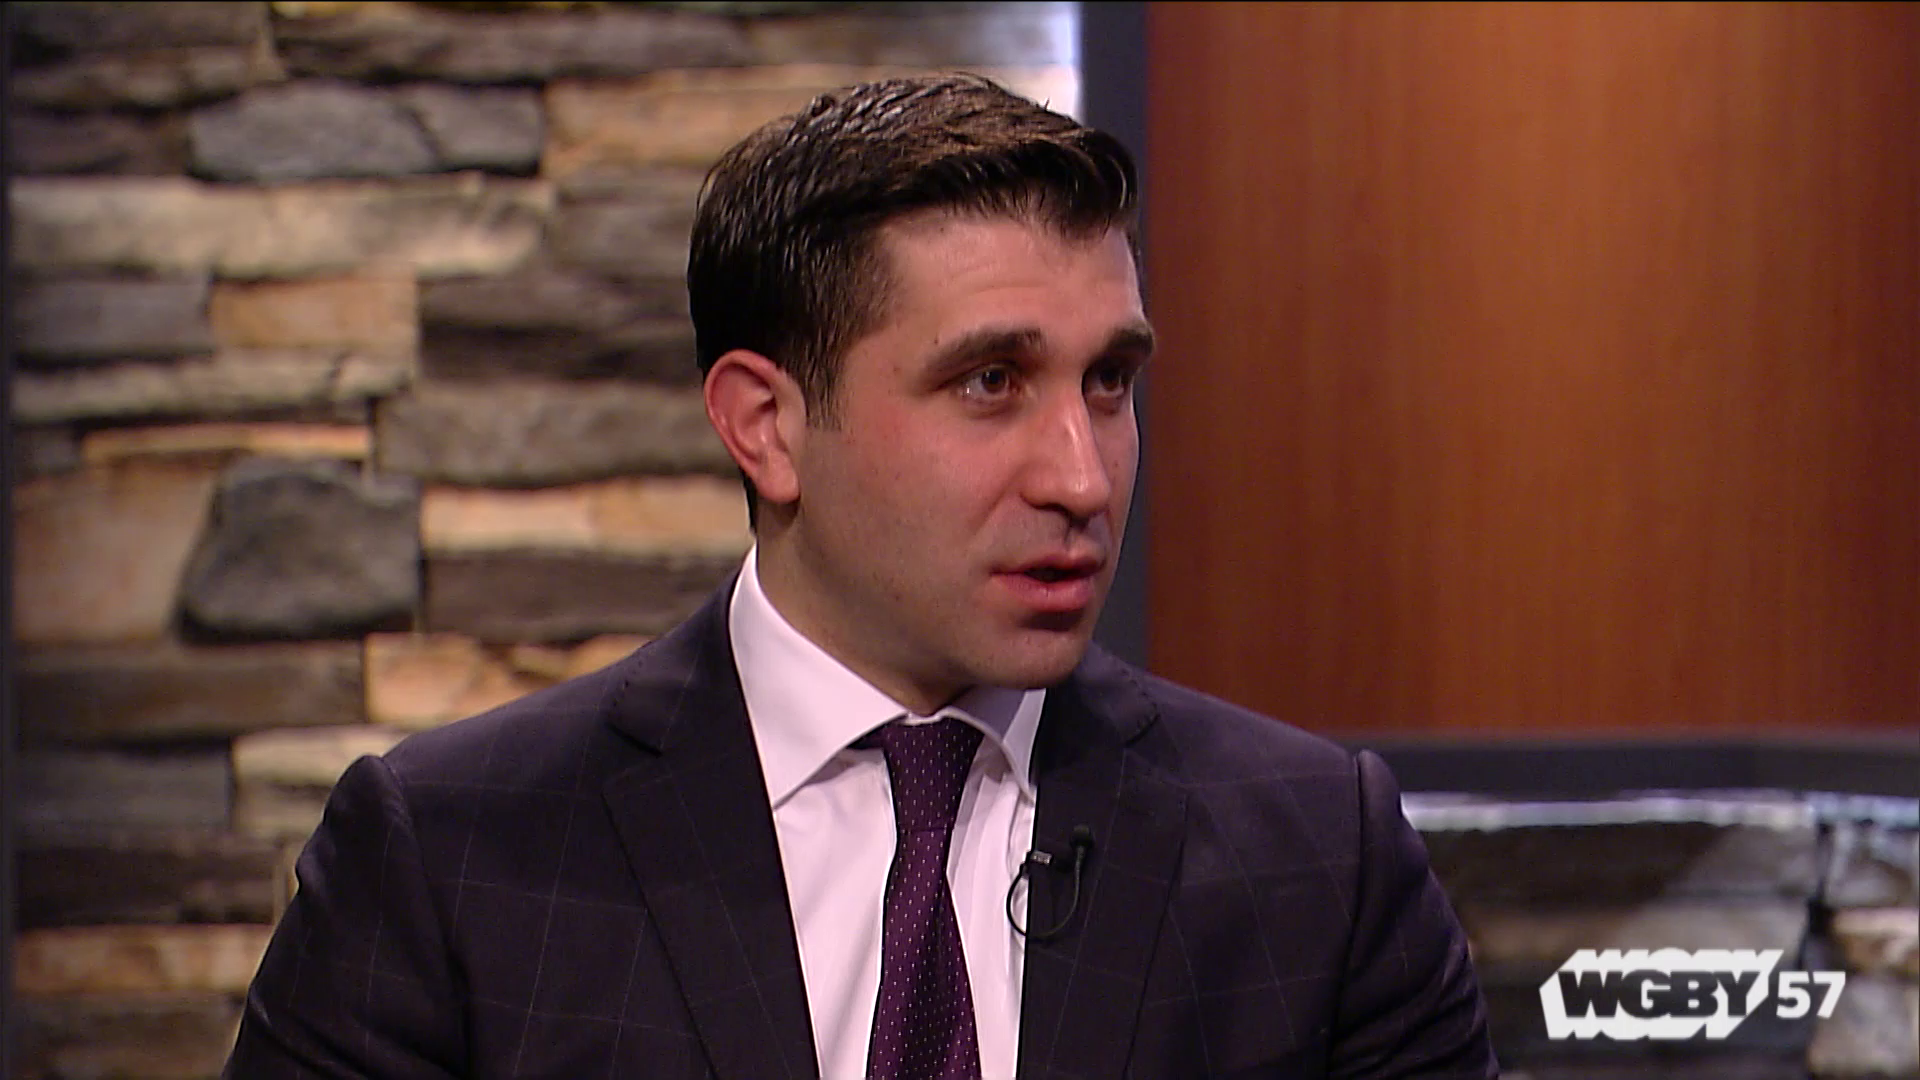 """Hampden County District Attorney Anthony Gulluni joins """"Connecting Point"""" to talk about his office's Stop the Swerve campaign. The campaign educates Hampden County high schoolers about the dangers of drunk or impaired driving through hands-on activities and contests to design PSAs and billboards for the program."""